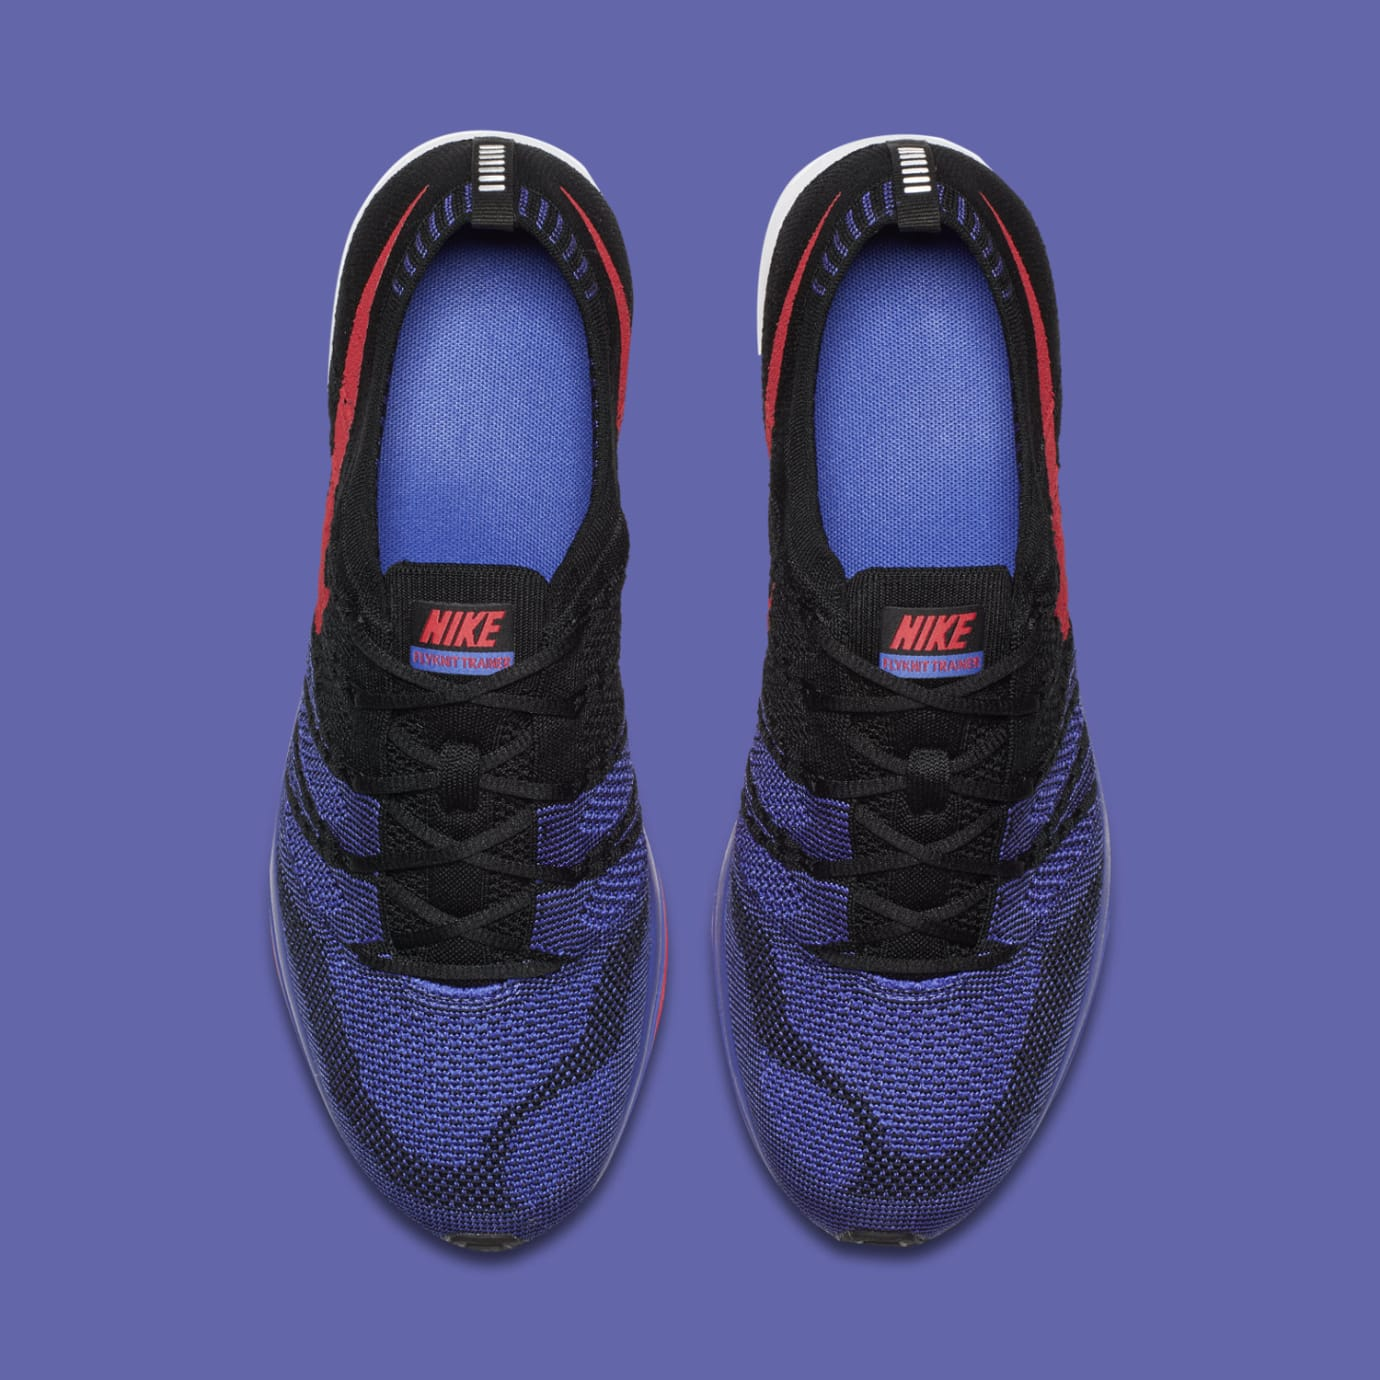 Nike Flyknit Trainer 'Siren Red/Persian Violet' AH8396-003 (Top)